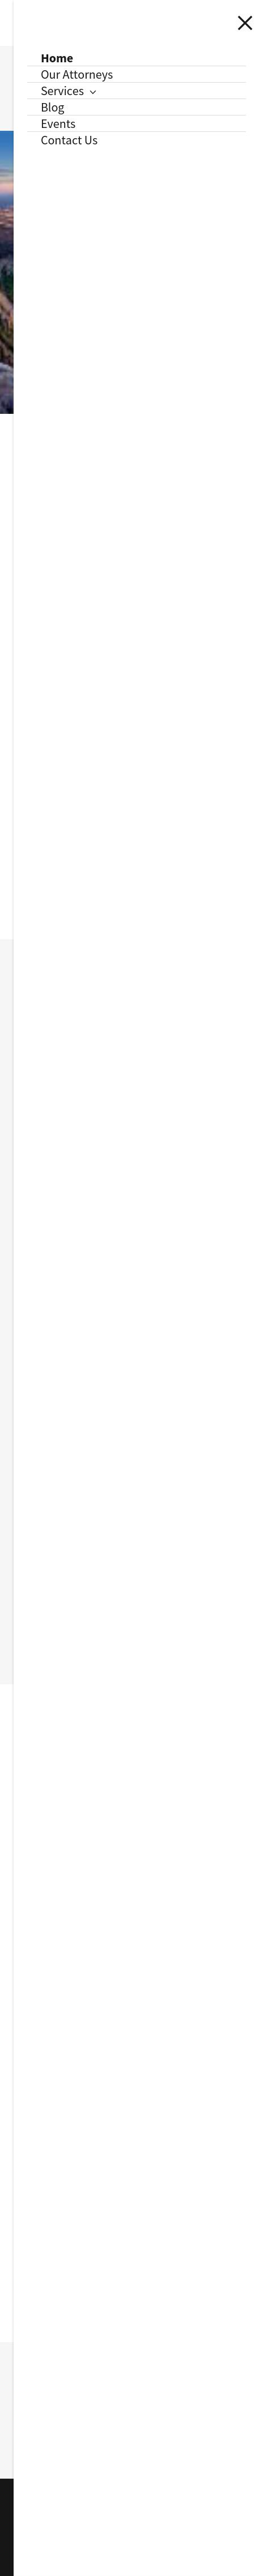 Wolf & Fox, P.C. - Albuquerque NM Lawyers